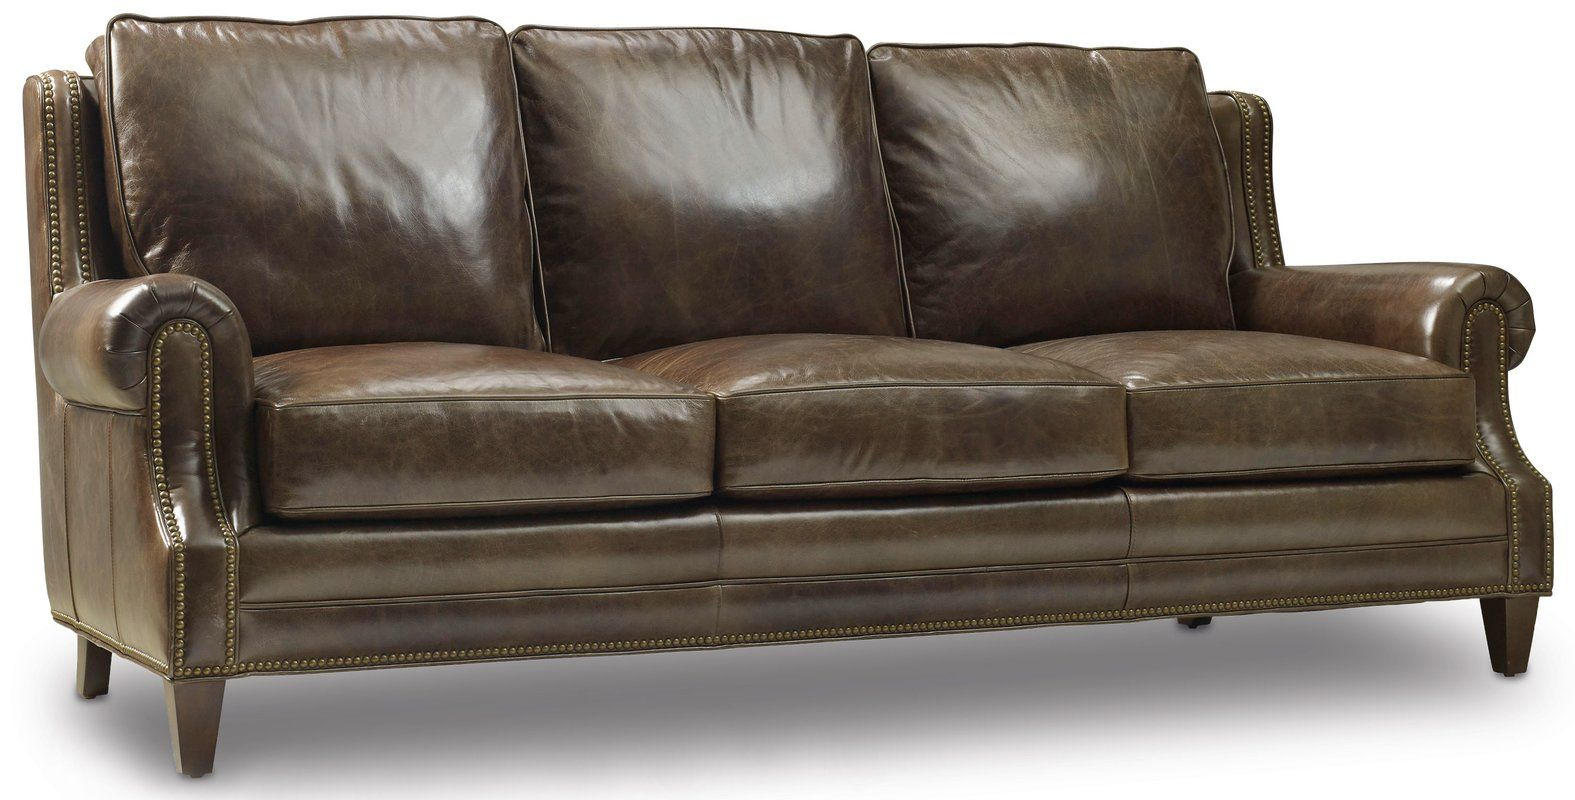 Houck Genuine Leather 86 5 Rolled Arm Sofa Genuine Leather Sofa Leather Sofa Leather Furniture